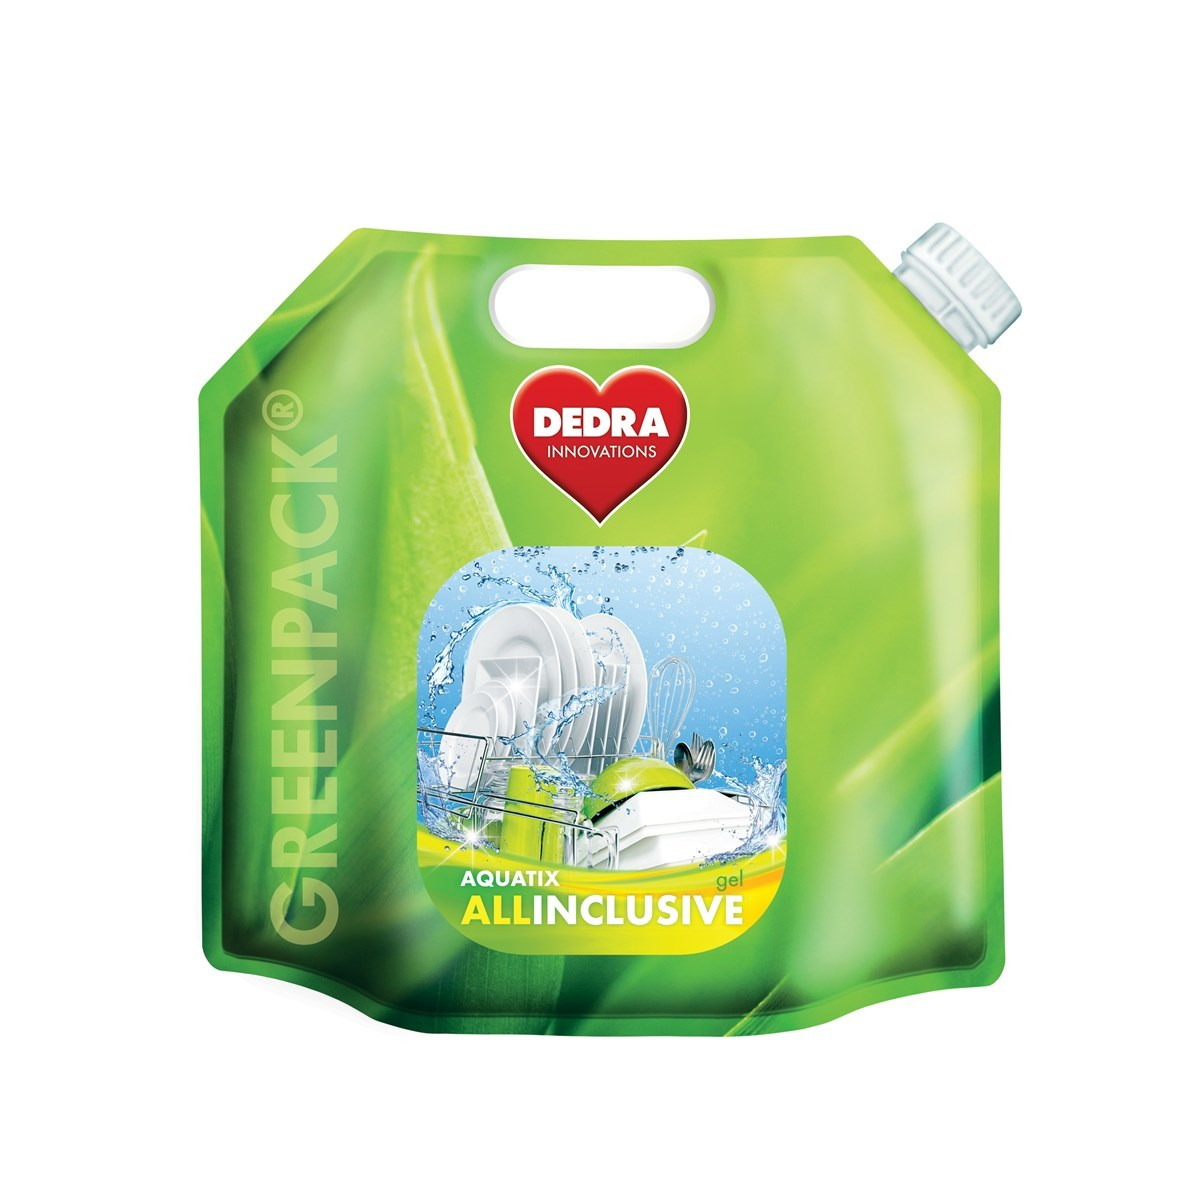 AQUATIX ALLINCLUSIVE Greenpack gel do umývačky